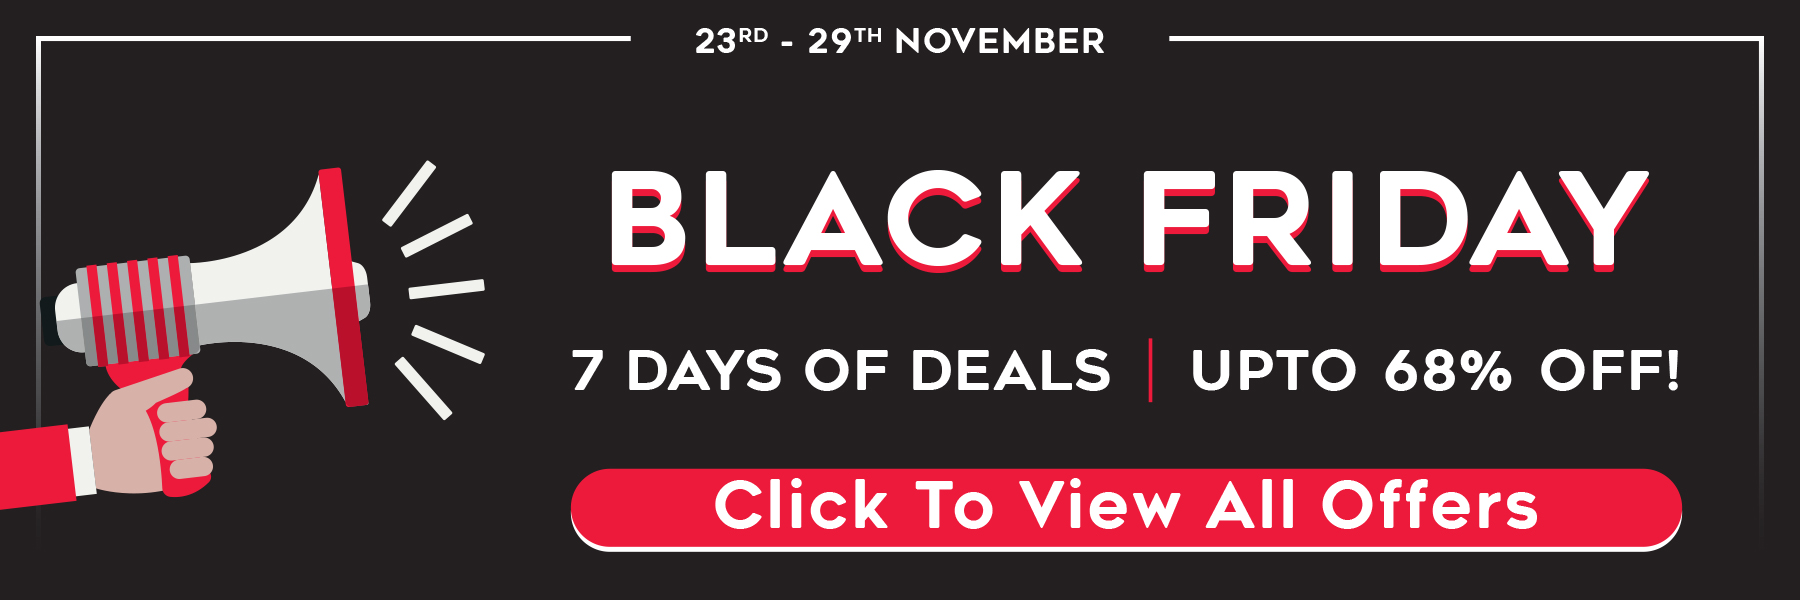 See all Black Friday offers at RSIS